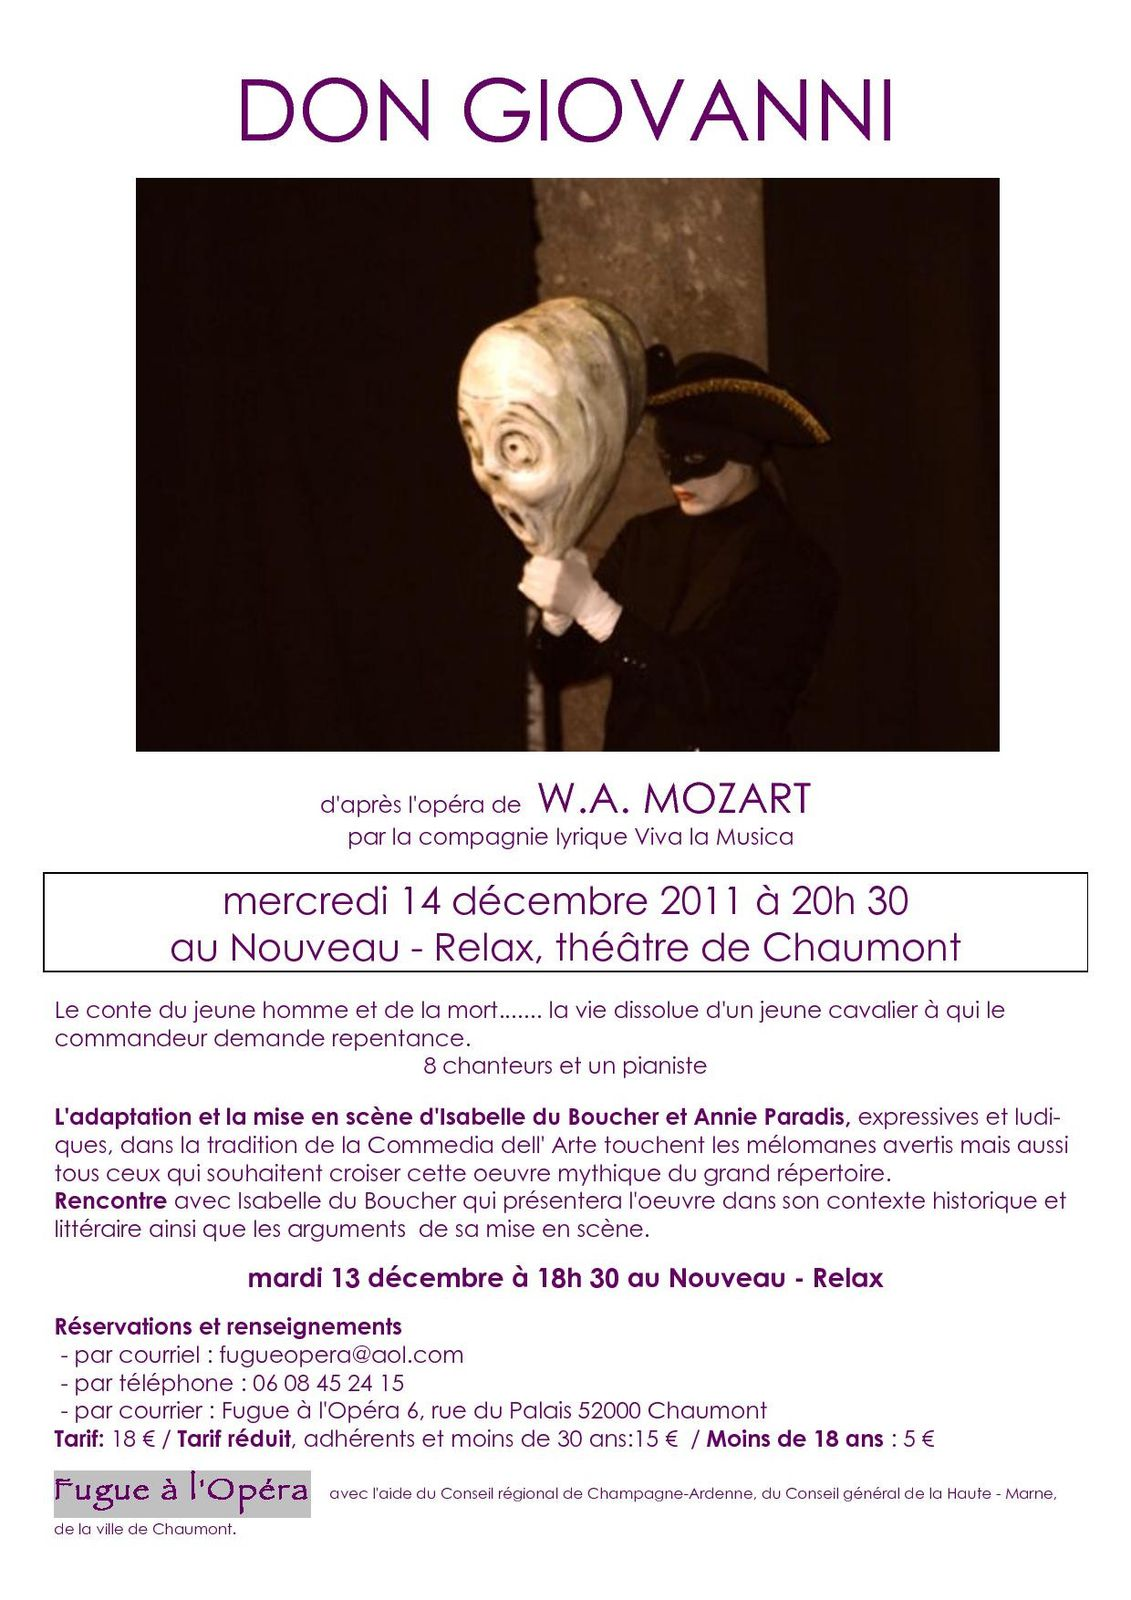 DON-GIOVANNI-flyer---courriel-page-001.jpg